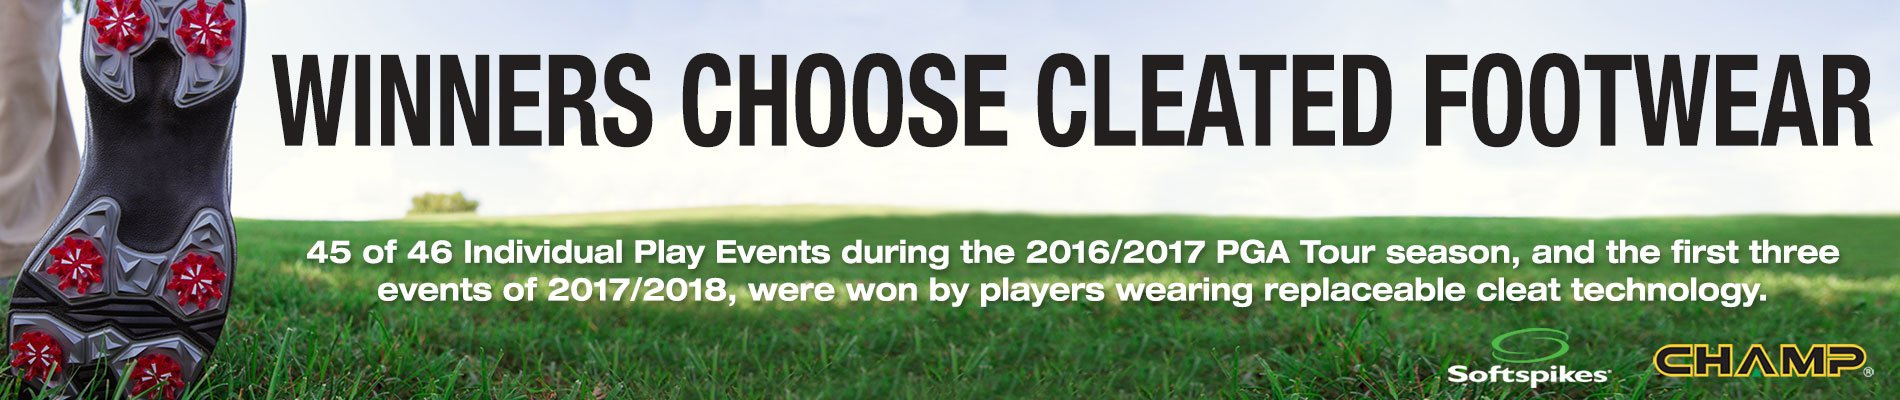 Winners Choose Cleated Footwear